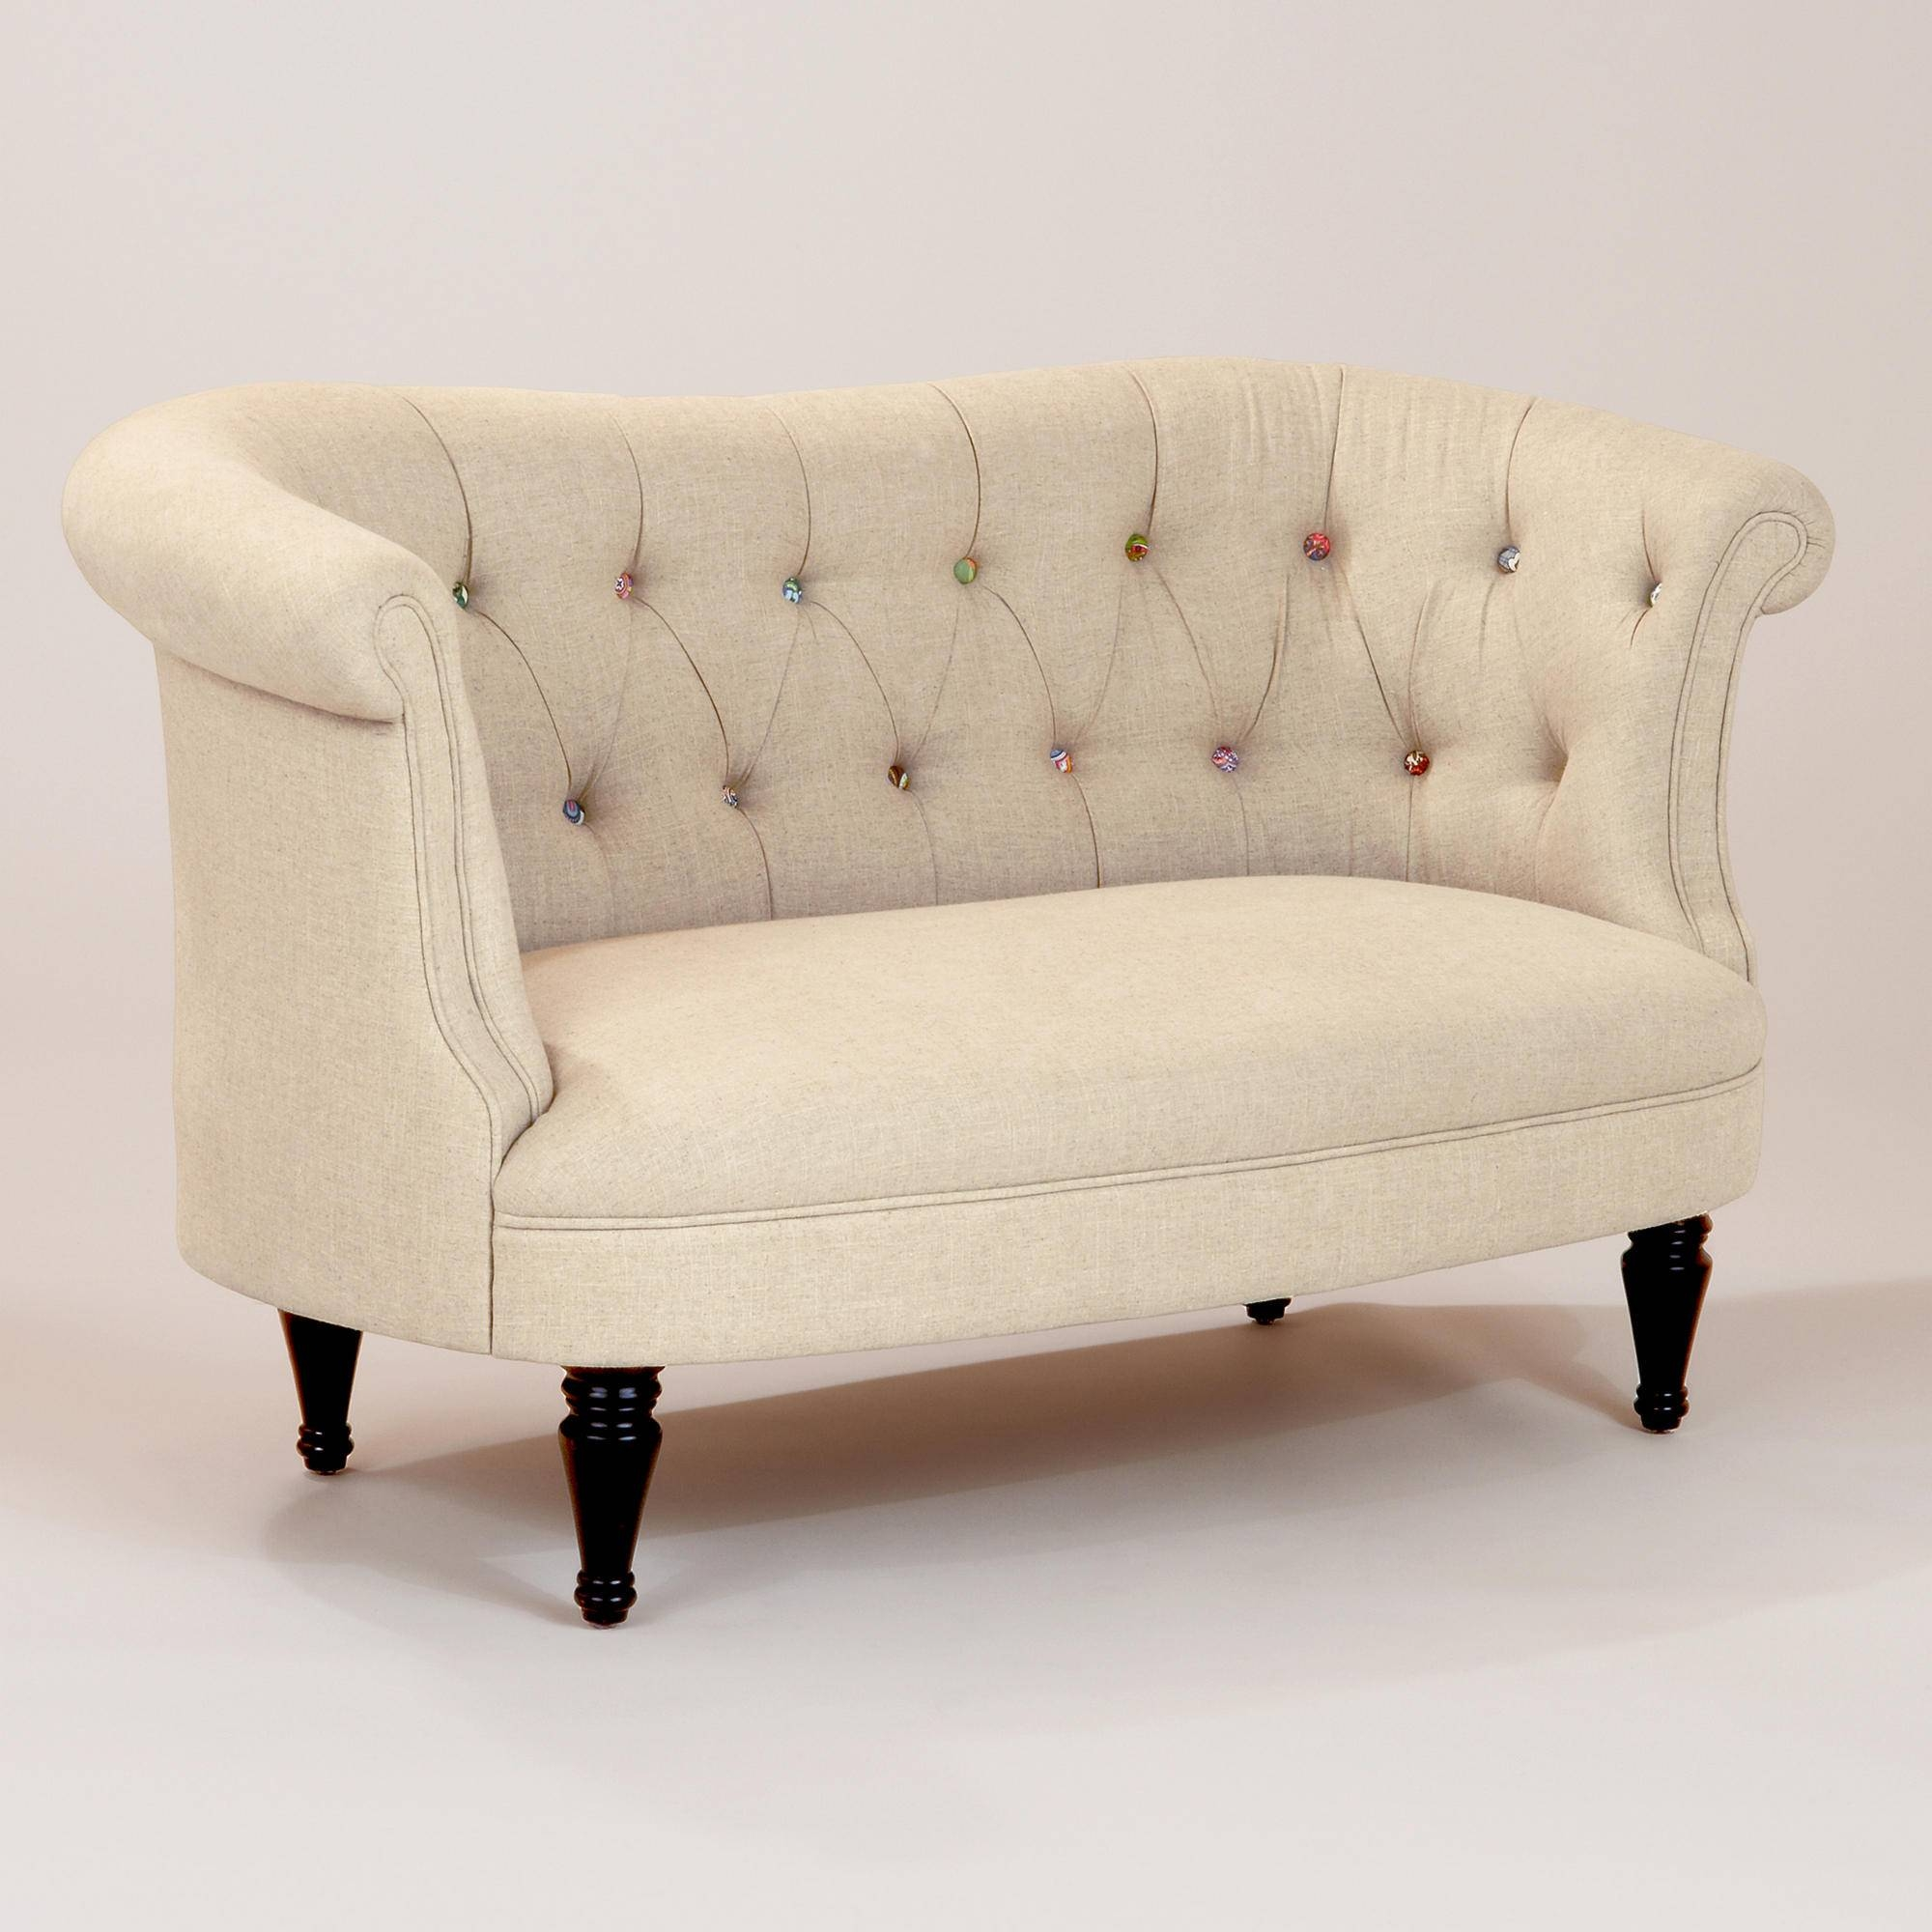 Furniture: Fabulous Tufted Loveseat For Interesting Living Room pertaining to Cheap Tufted Sofas (Image 5 of 30)